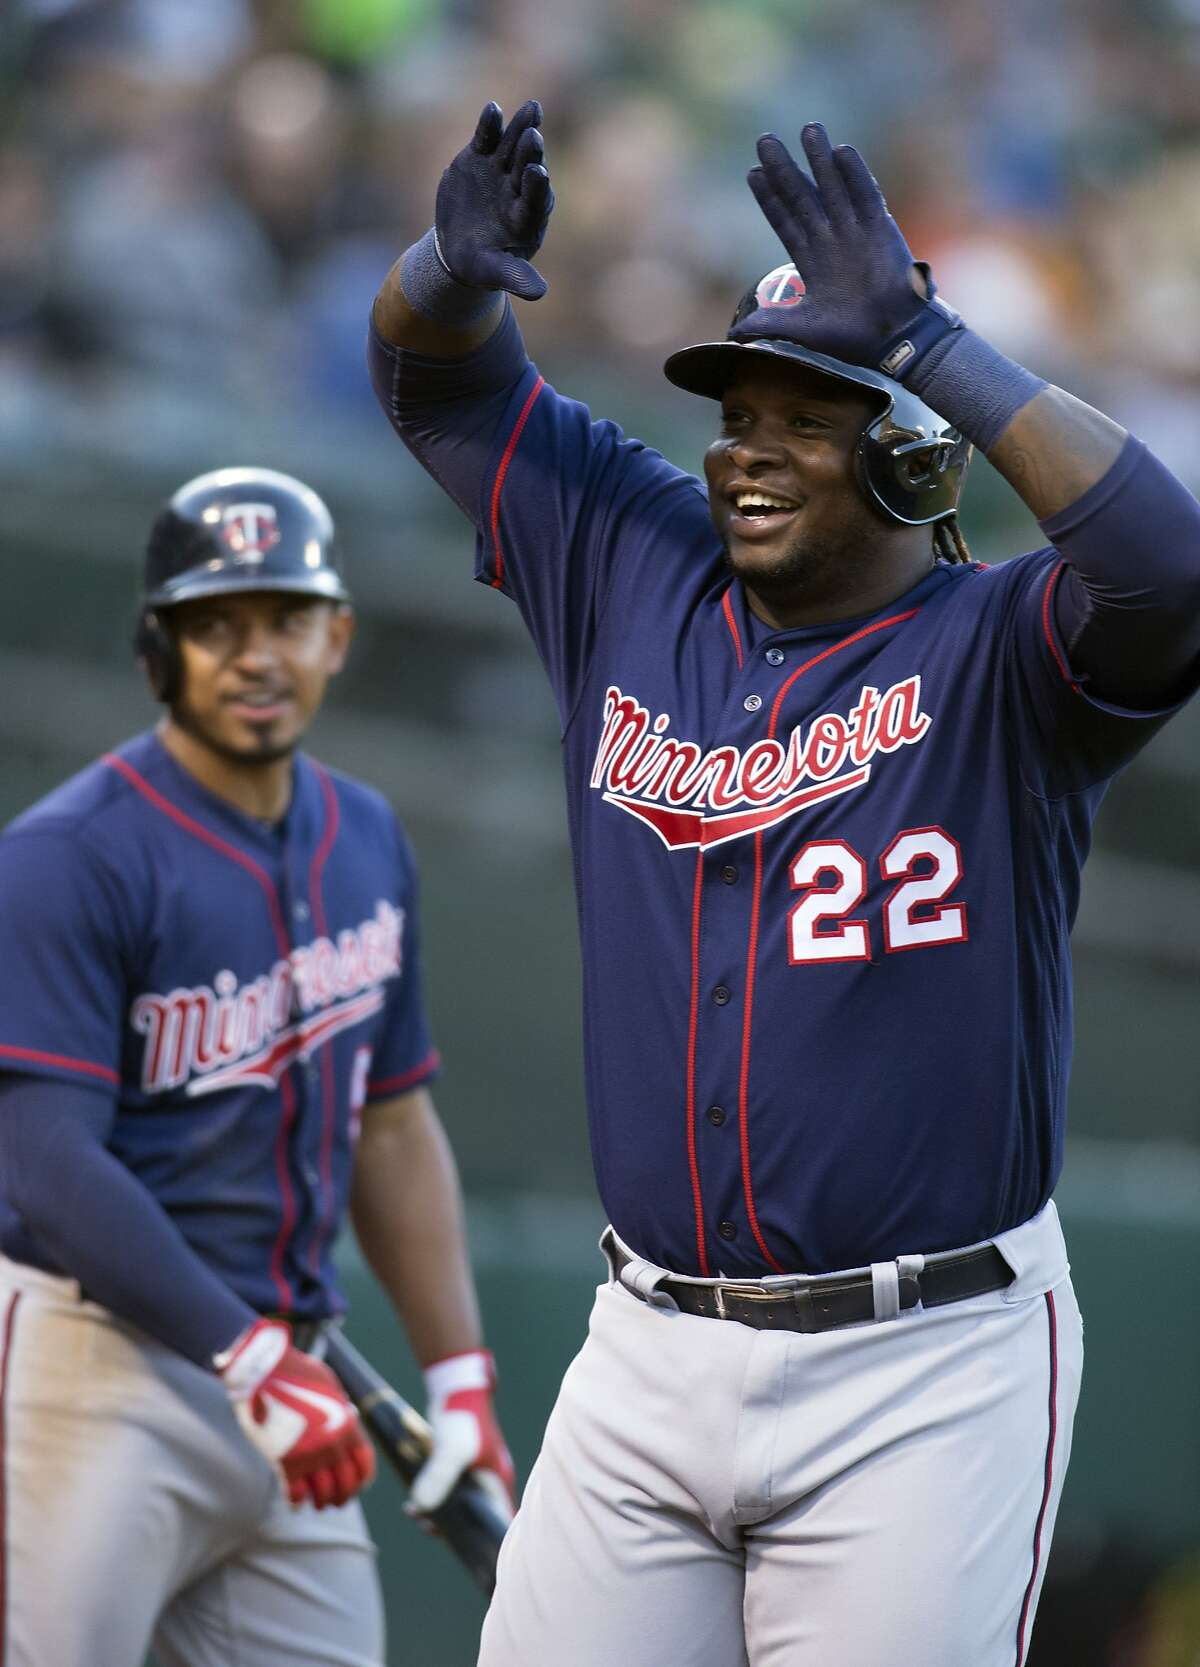 Minnesota Twins' Miguel Sano (22) celebrates his two-run home run against the Oakland Athletics during the fifth inning of a baseball game on Saturday, July 29, 2017, in Oakland, Calif. (AP Photo/D. Ross Cameron)